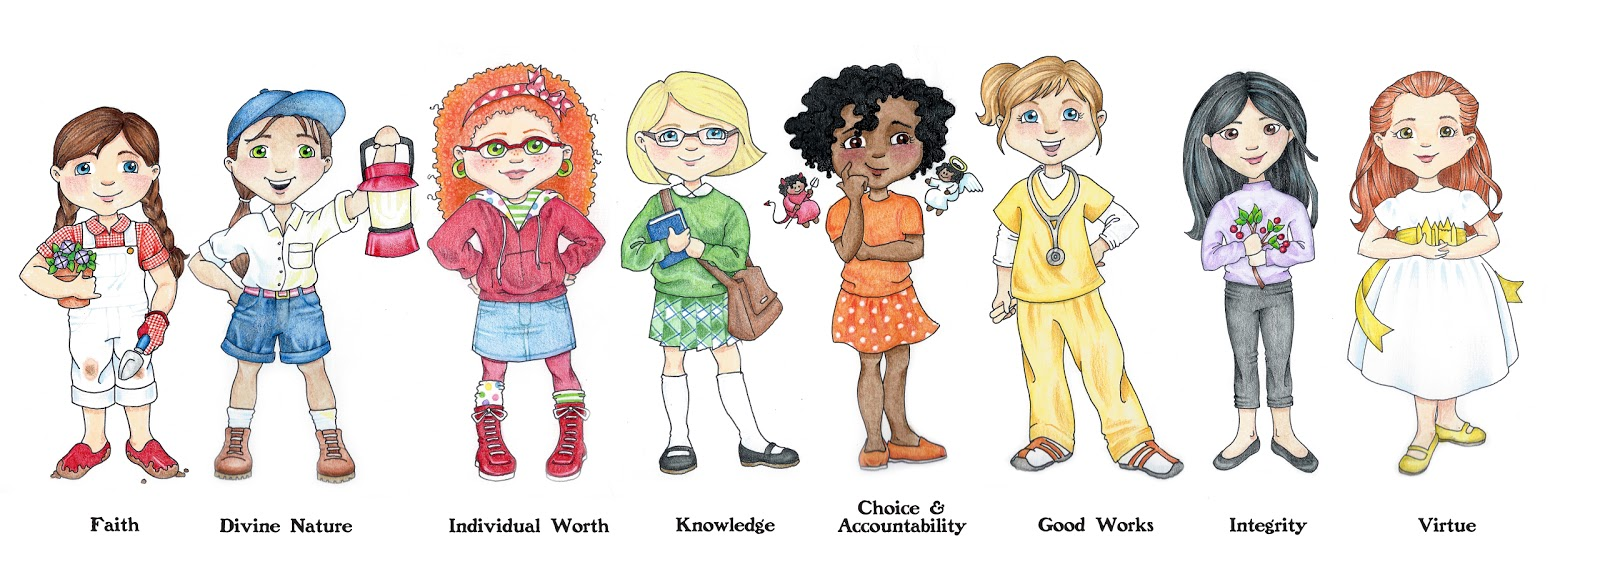 susan fitch design: Young Women's Value Characters